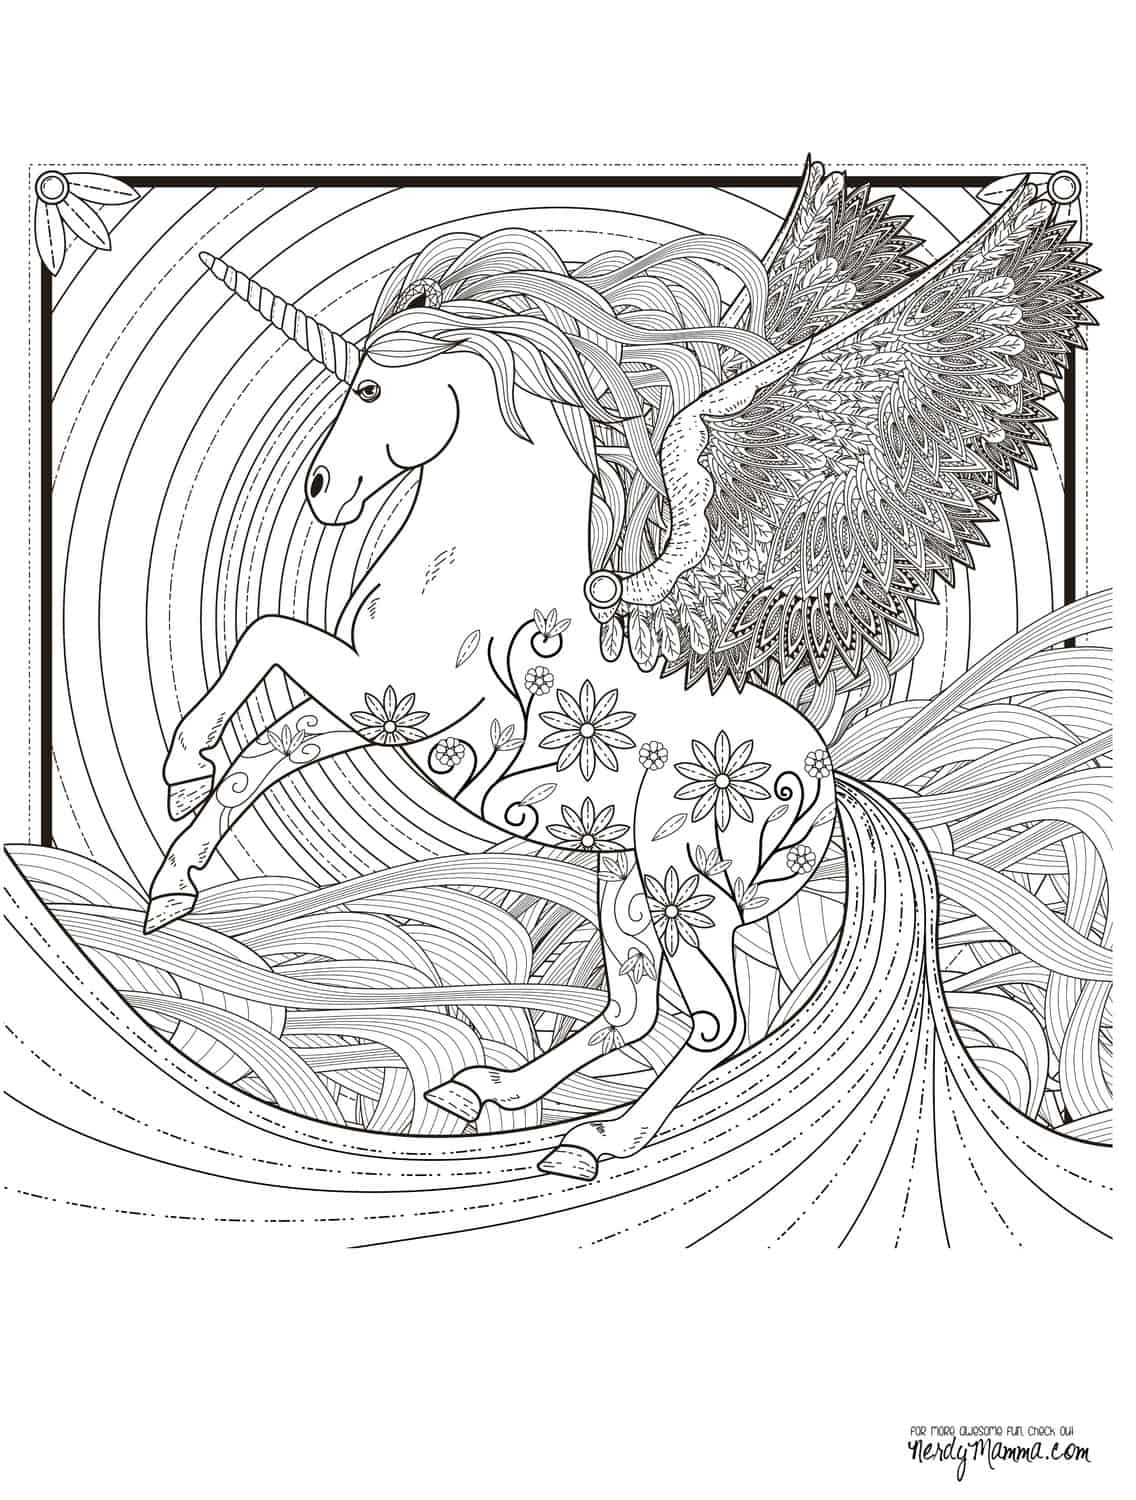 Hard unicorn coloring pages - Get The Free Downloadable Jpg Here